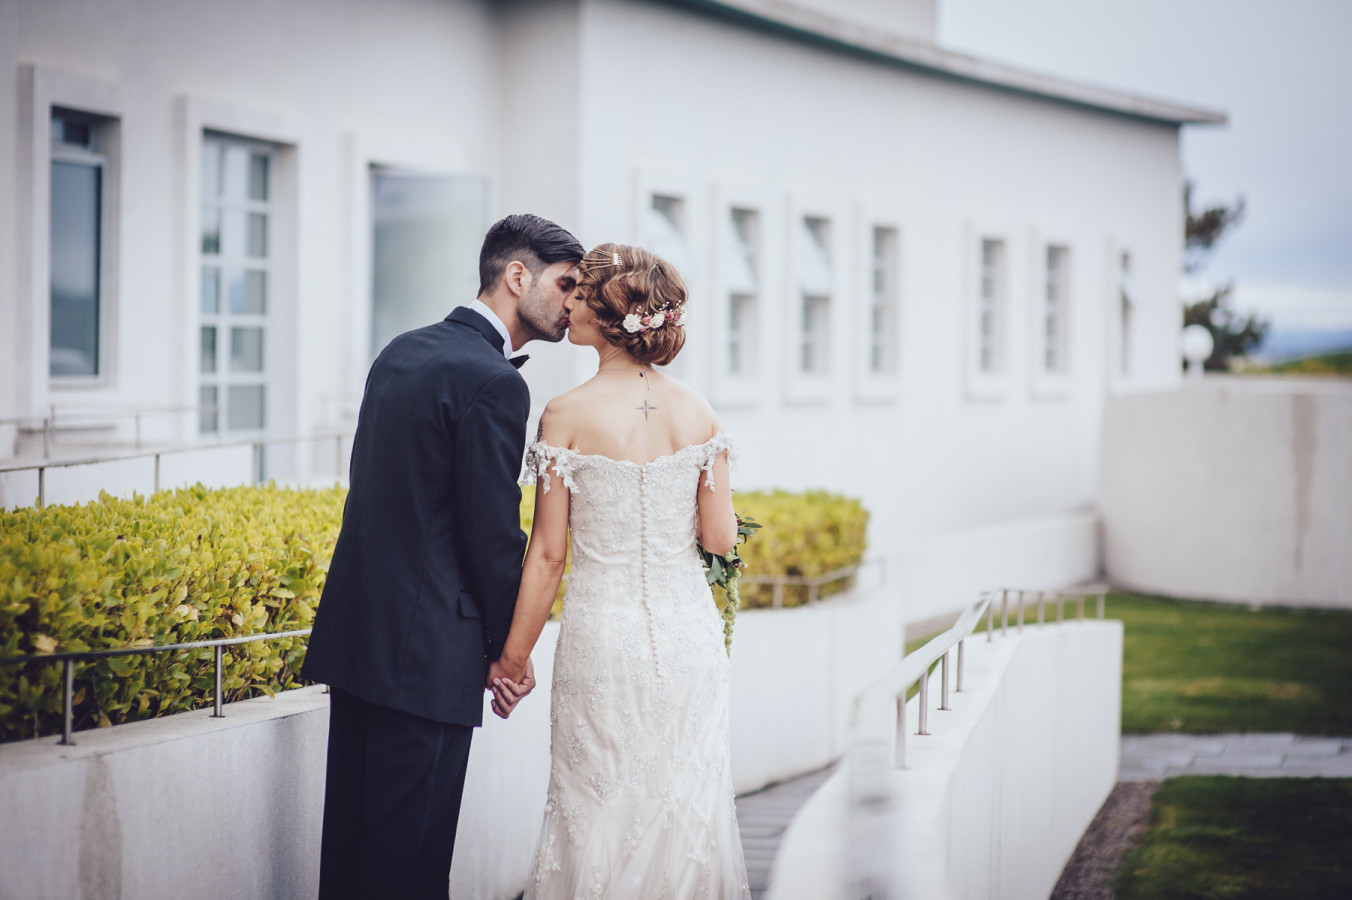 Vintage wedding at the midland hotel, morecambe